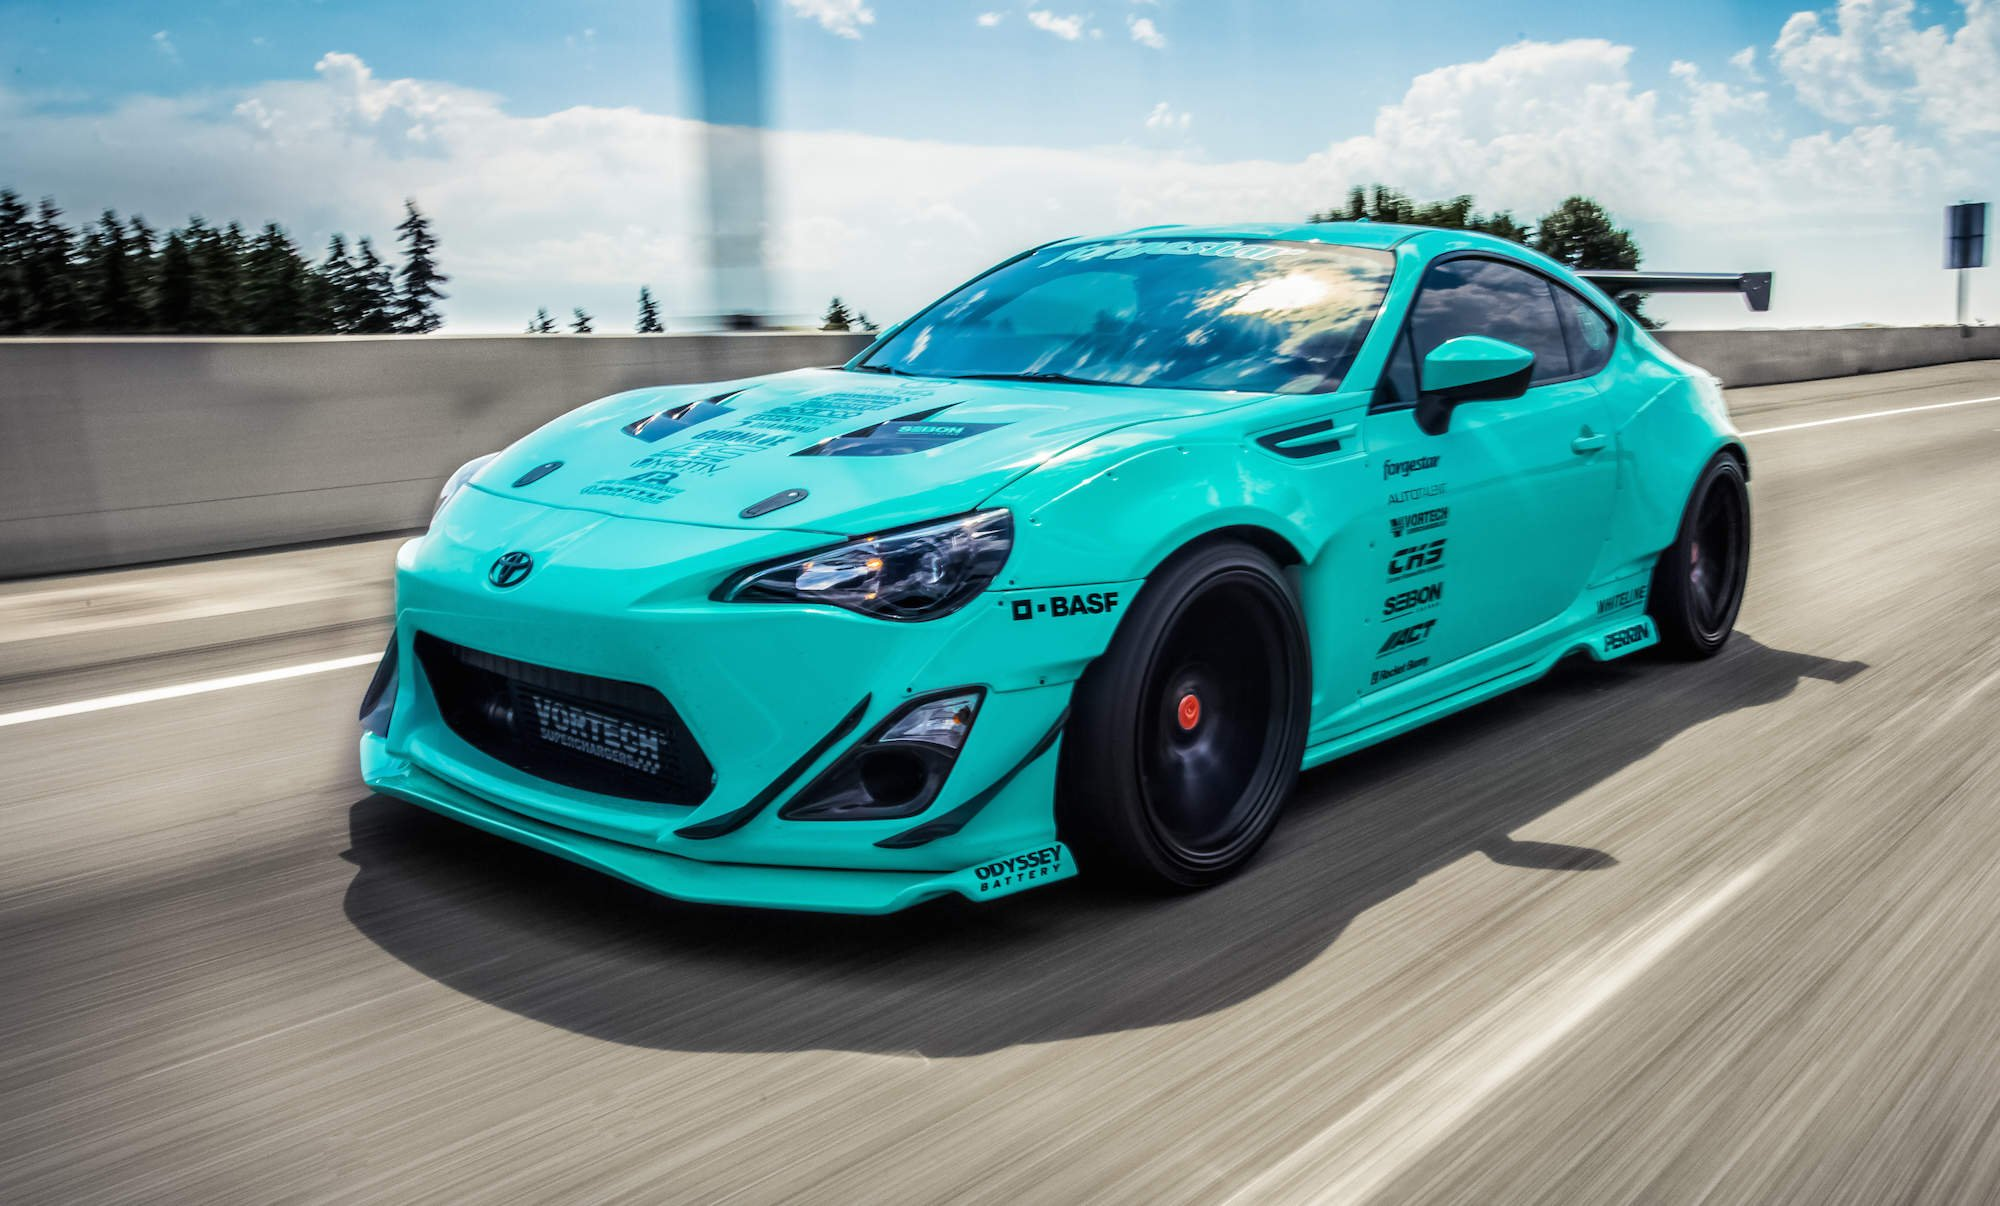 Rocket Bunny 2015 Widebody Totyota Gt86 Tuning Bodykit